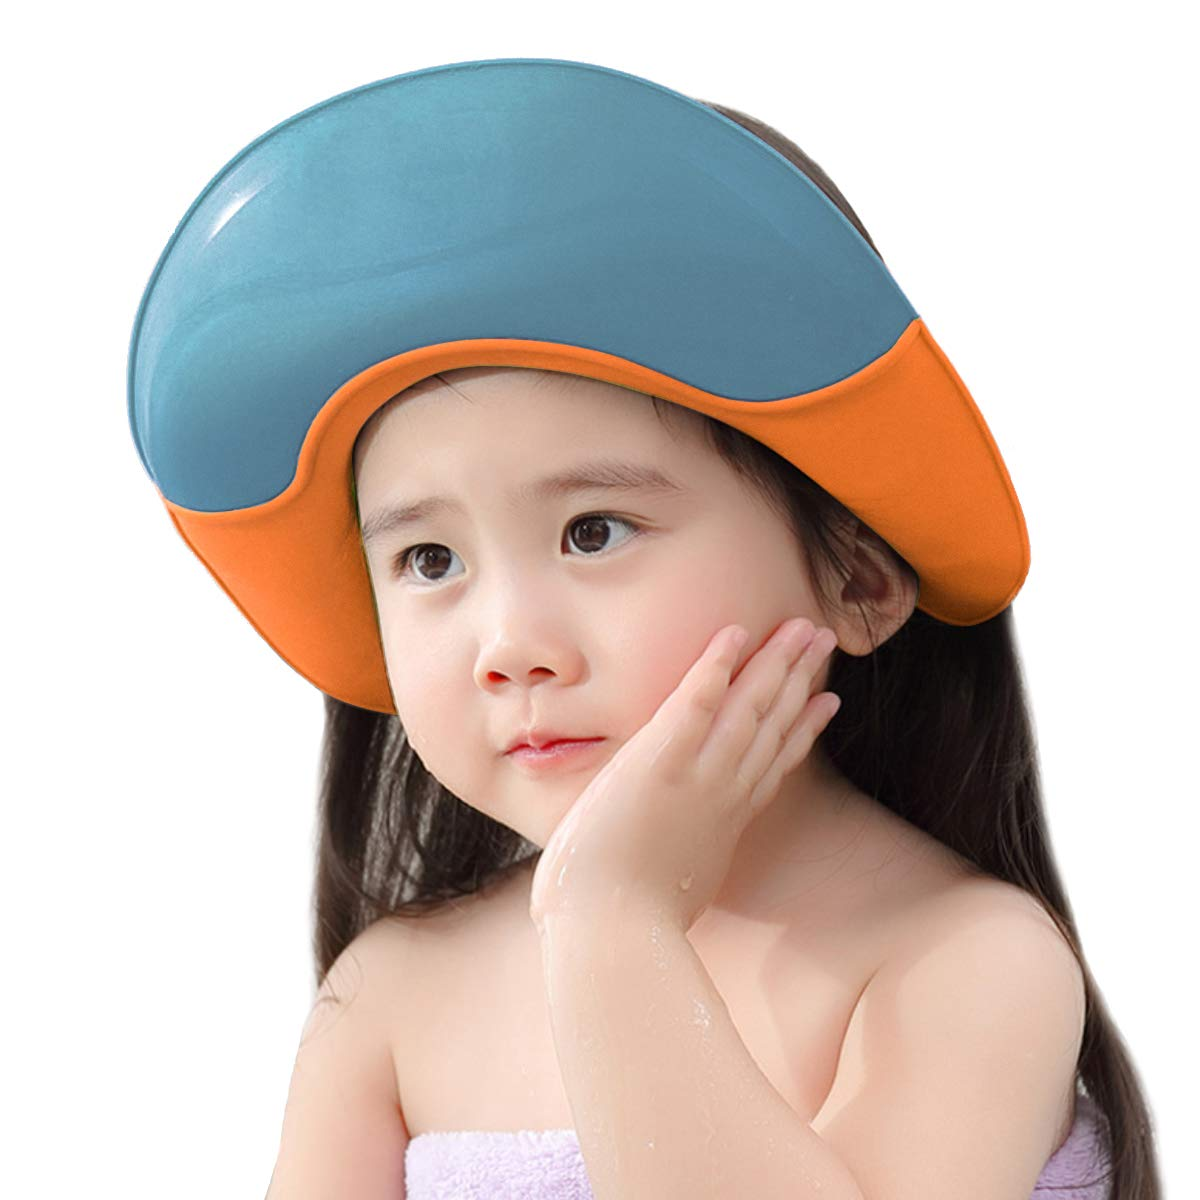 Baby Shampoo Cap Adjustment Silicone Bathing Hat Wash Hair Shield Hat Suitable for Babies, Toddlers, Children